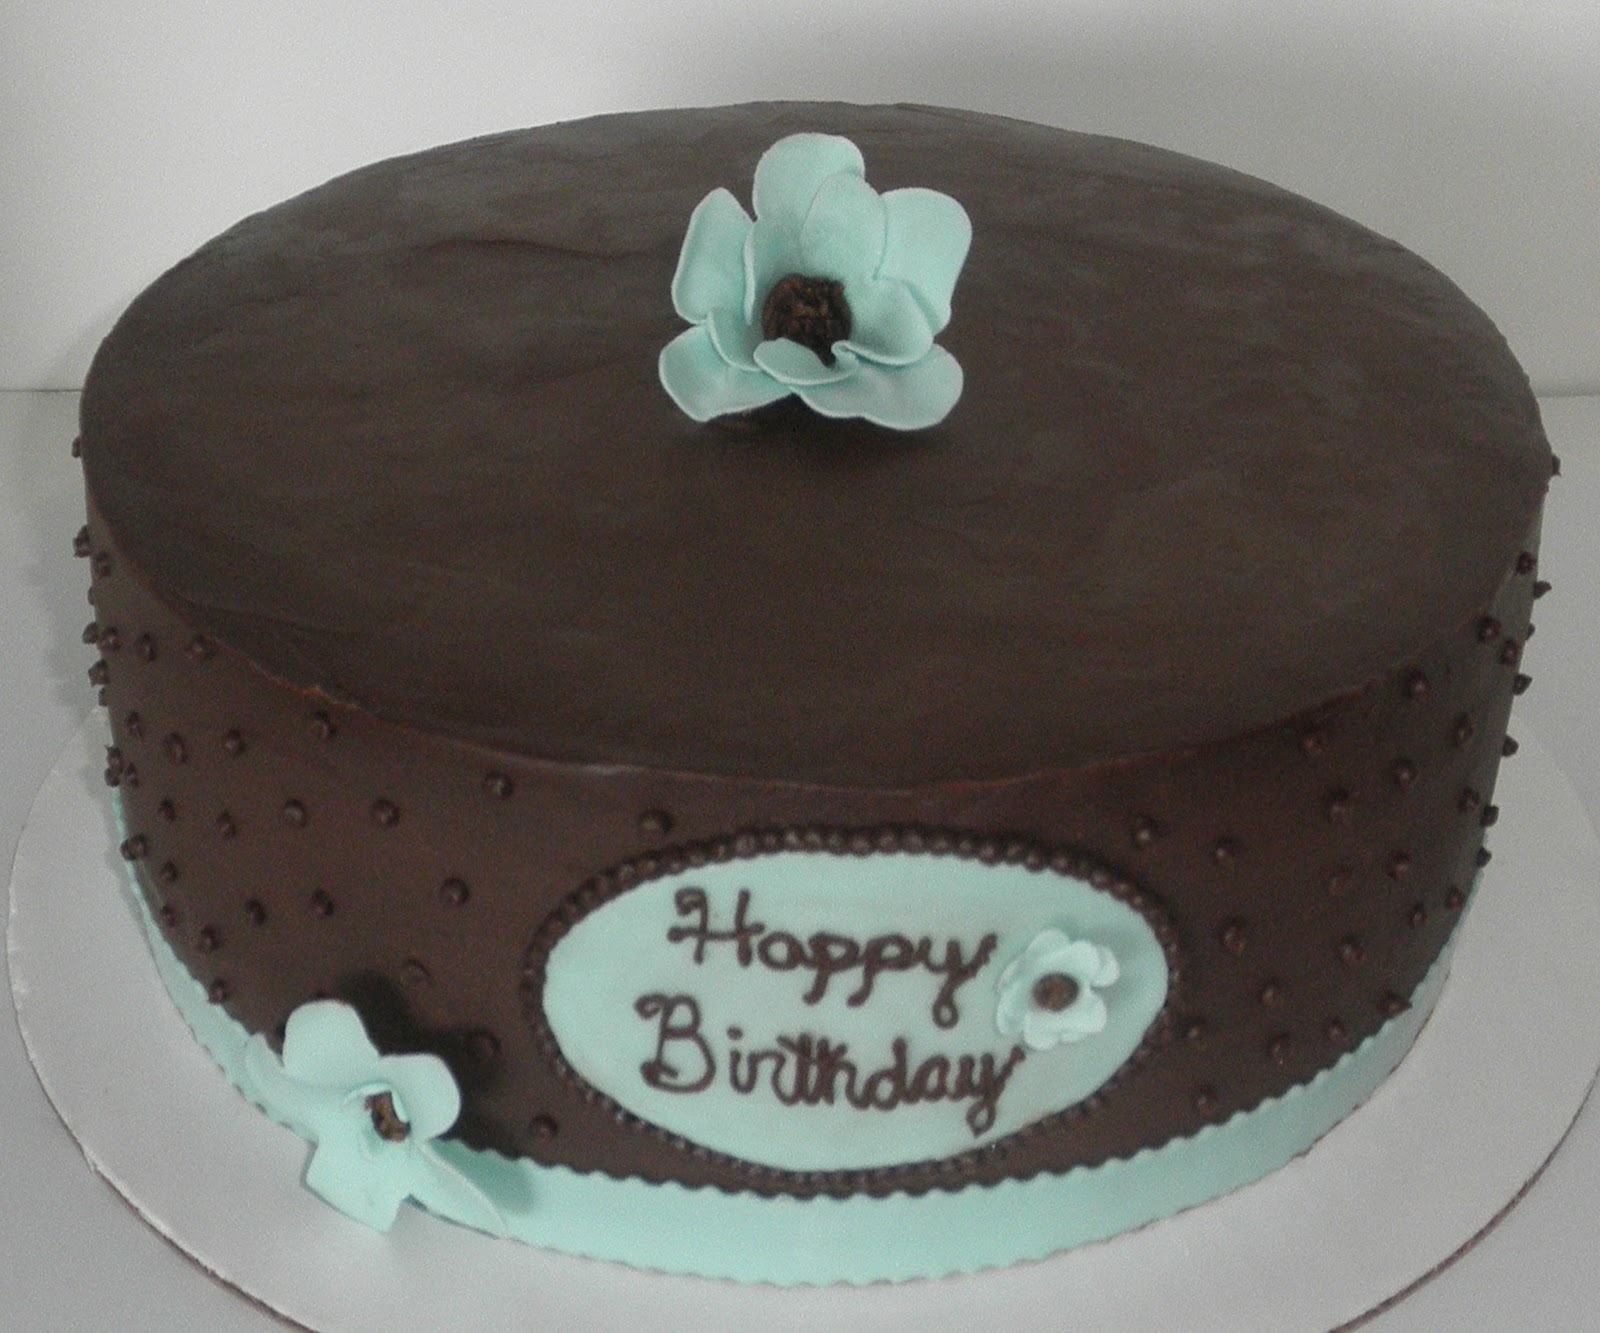 Sweet ts cake design light blue flowers w brown centers light blue flowers w brown centers chocolate ganache w pastry cream birthday cake izmirmasajfo